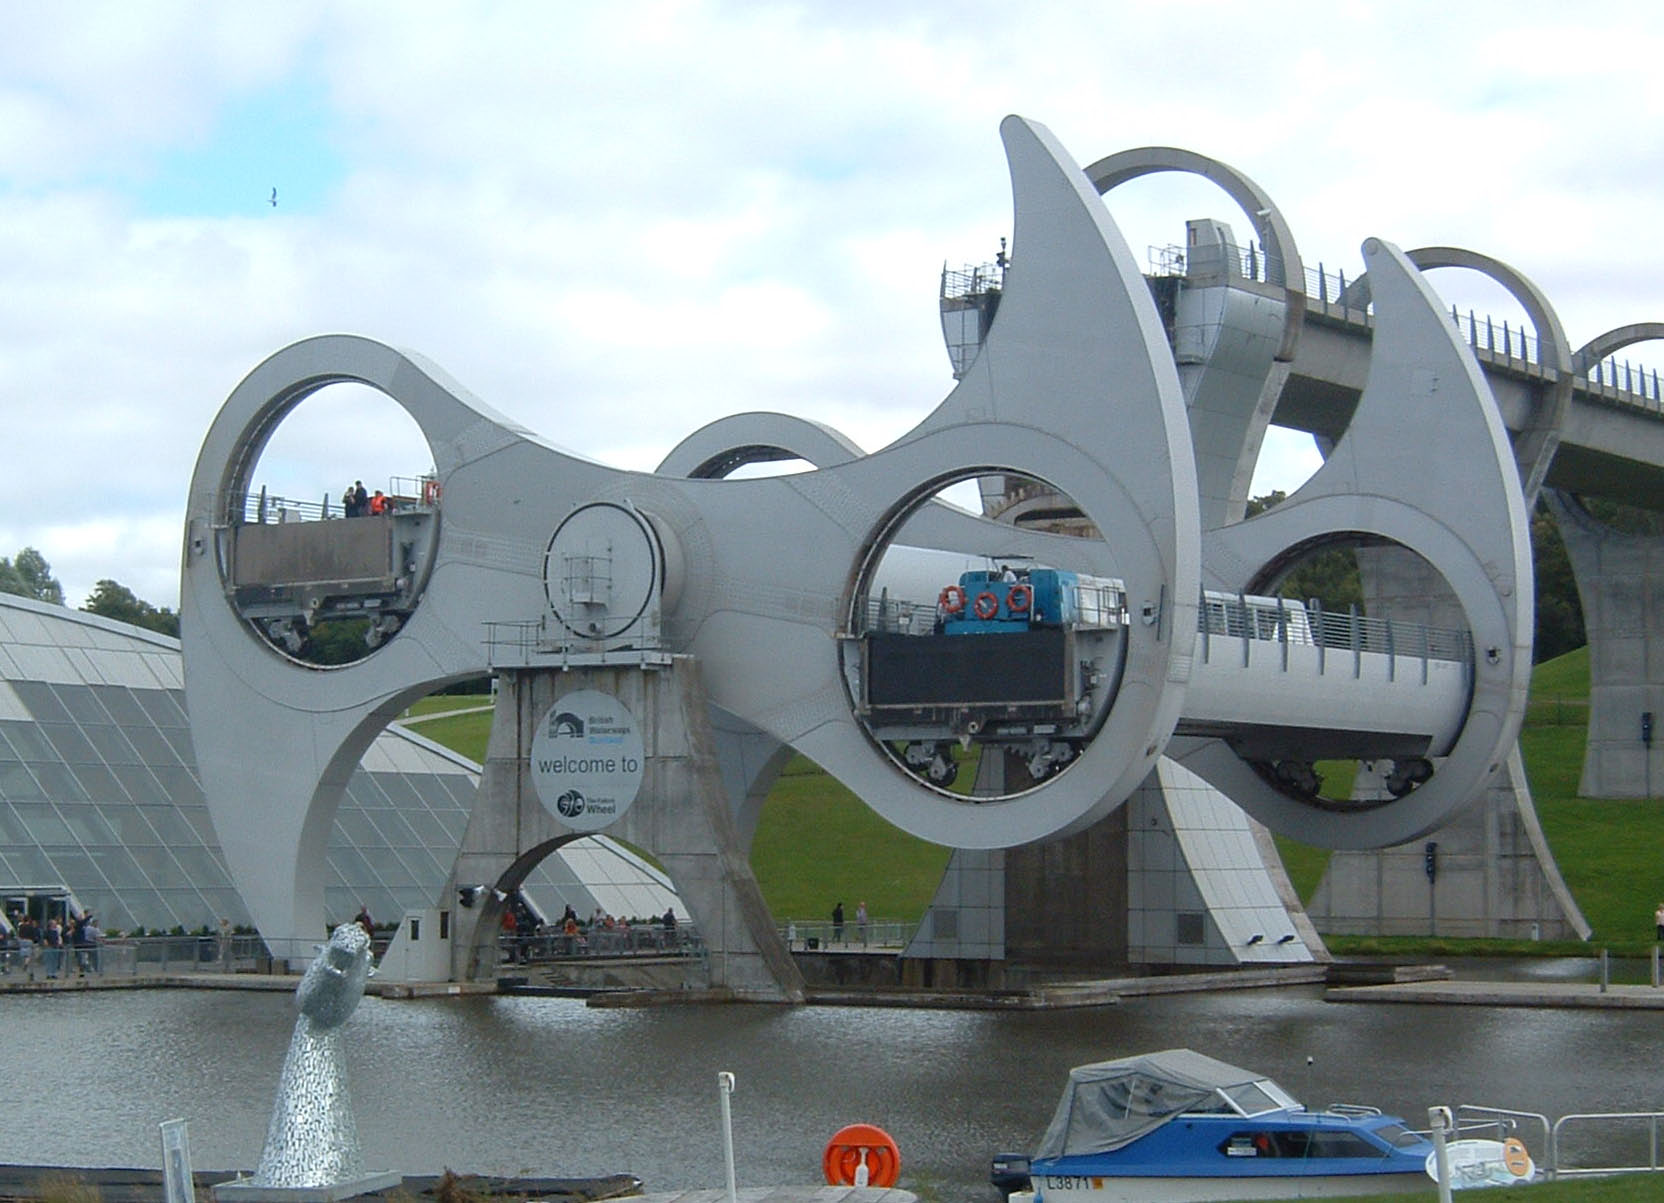 Falkirk Wheel Central Scotland, Falkirk Wheel - Sharenator